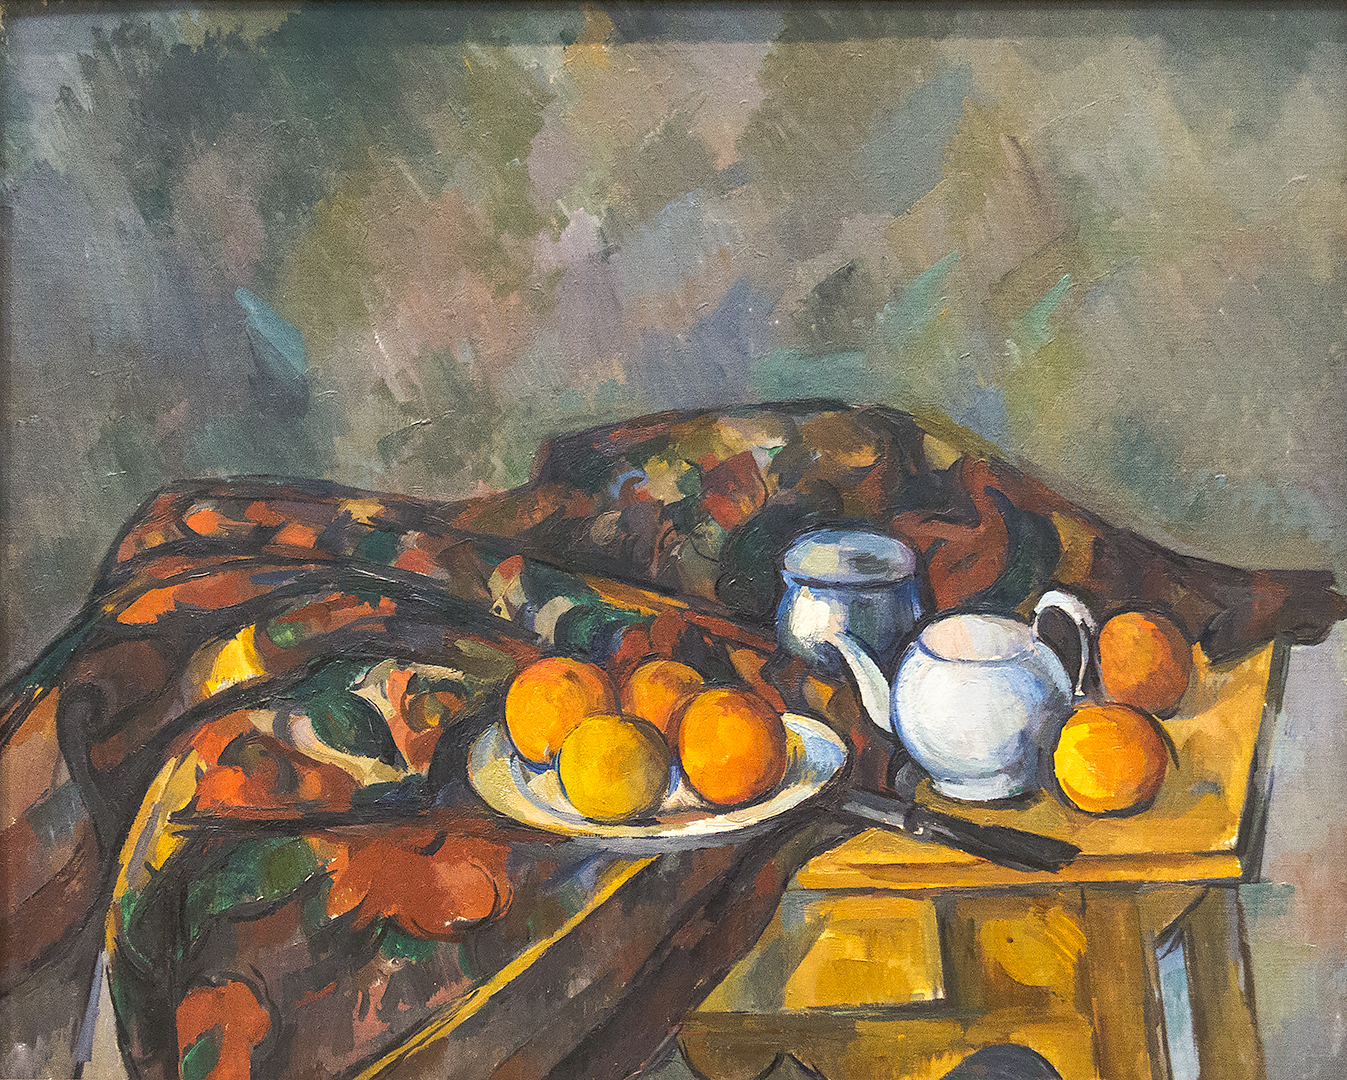 Still life with teapot by Paul Cézanne